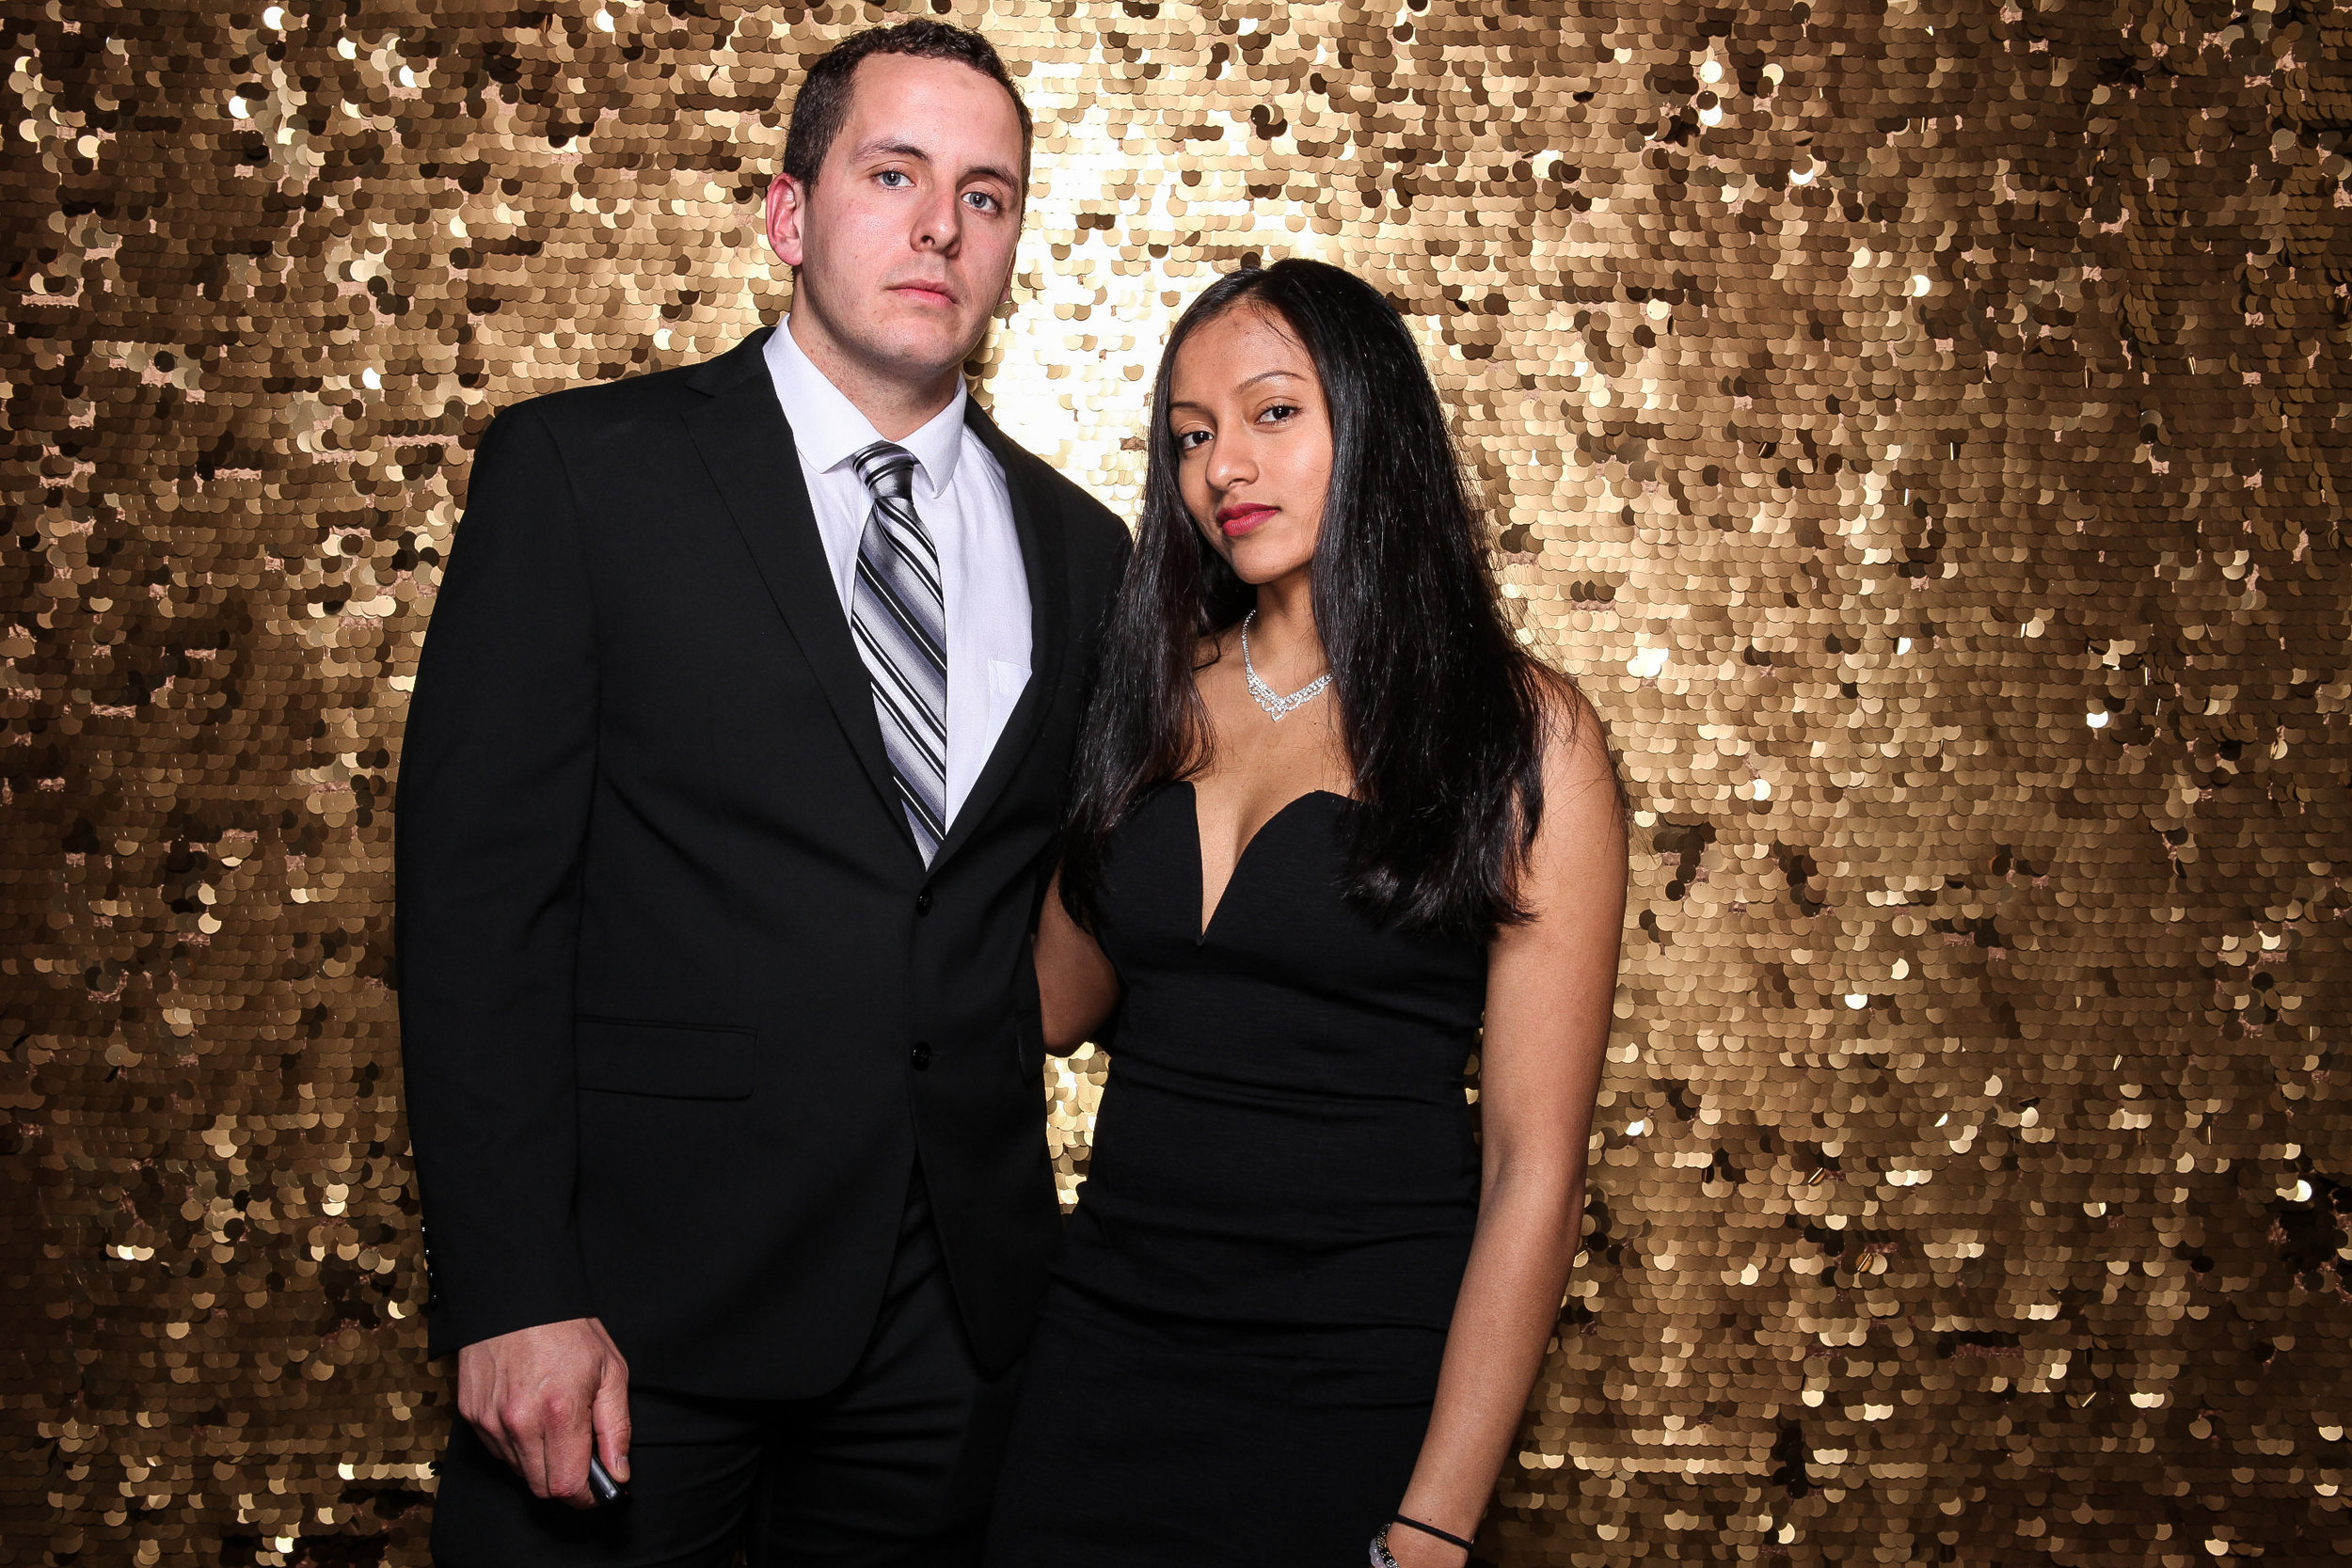 20190503_Adelphi_Senior_Formal-183.jpg